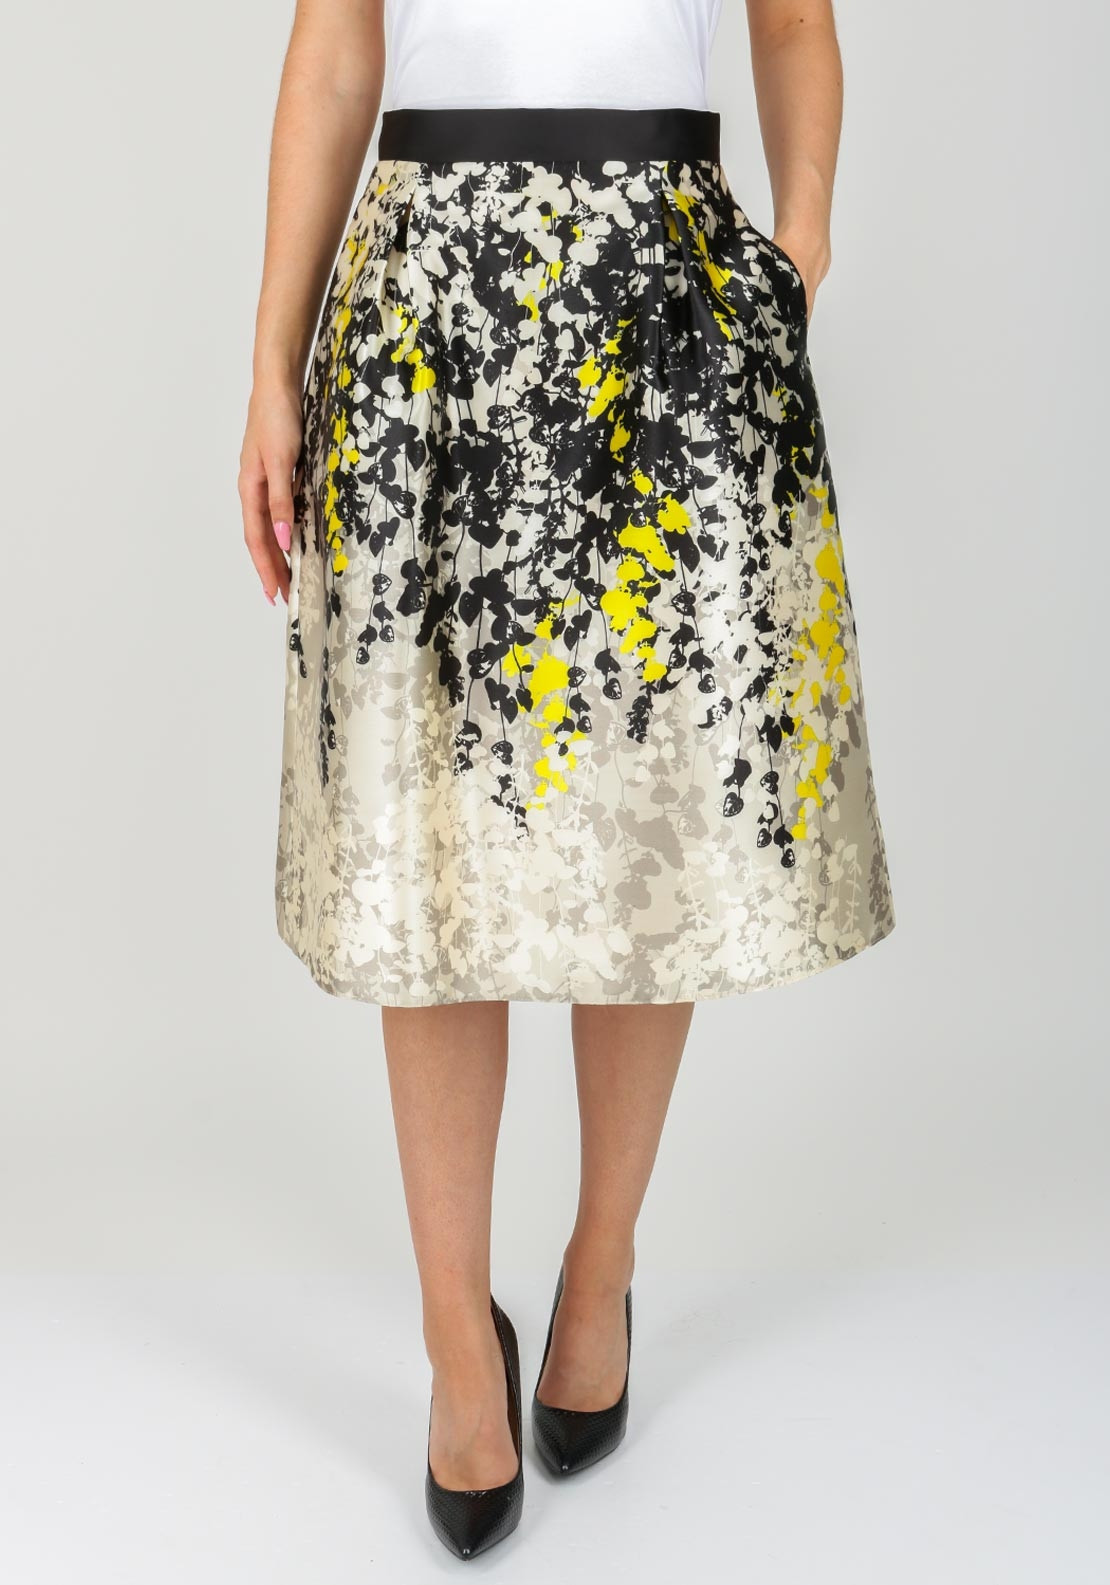 Fee G Graphic Floral Flared Skirt, Multi-Coloured